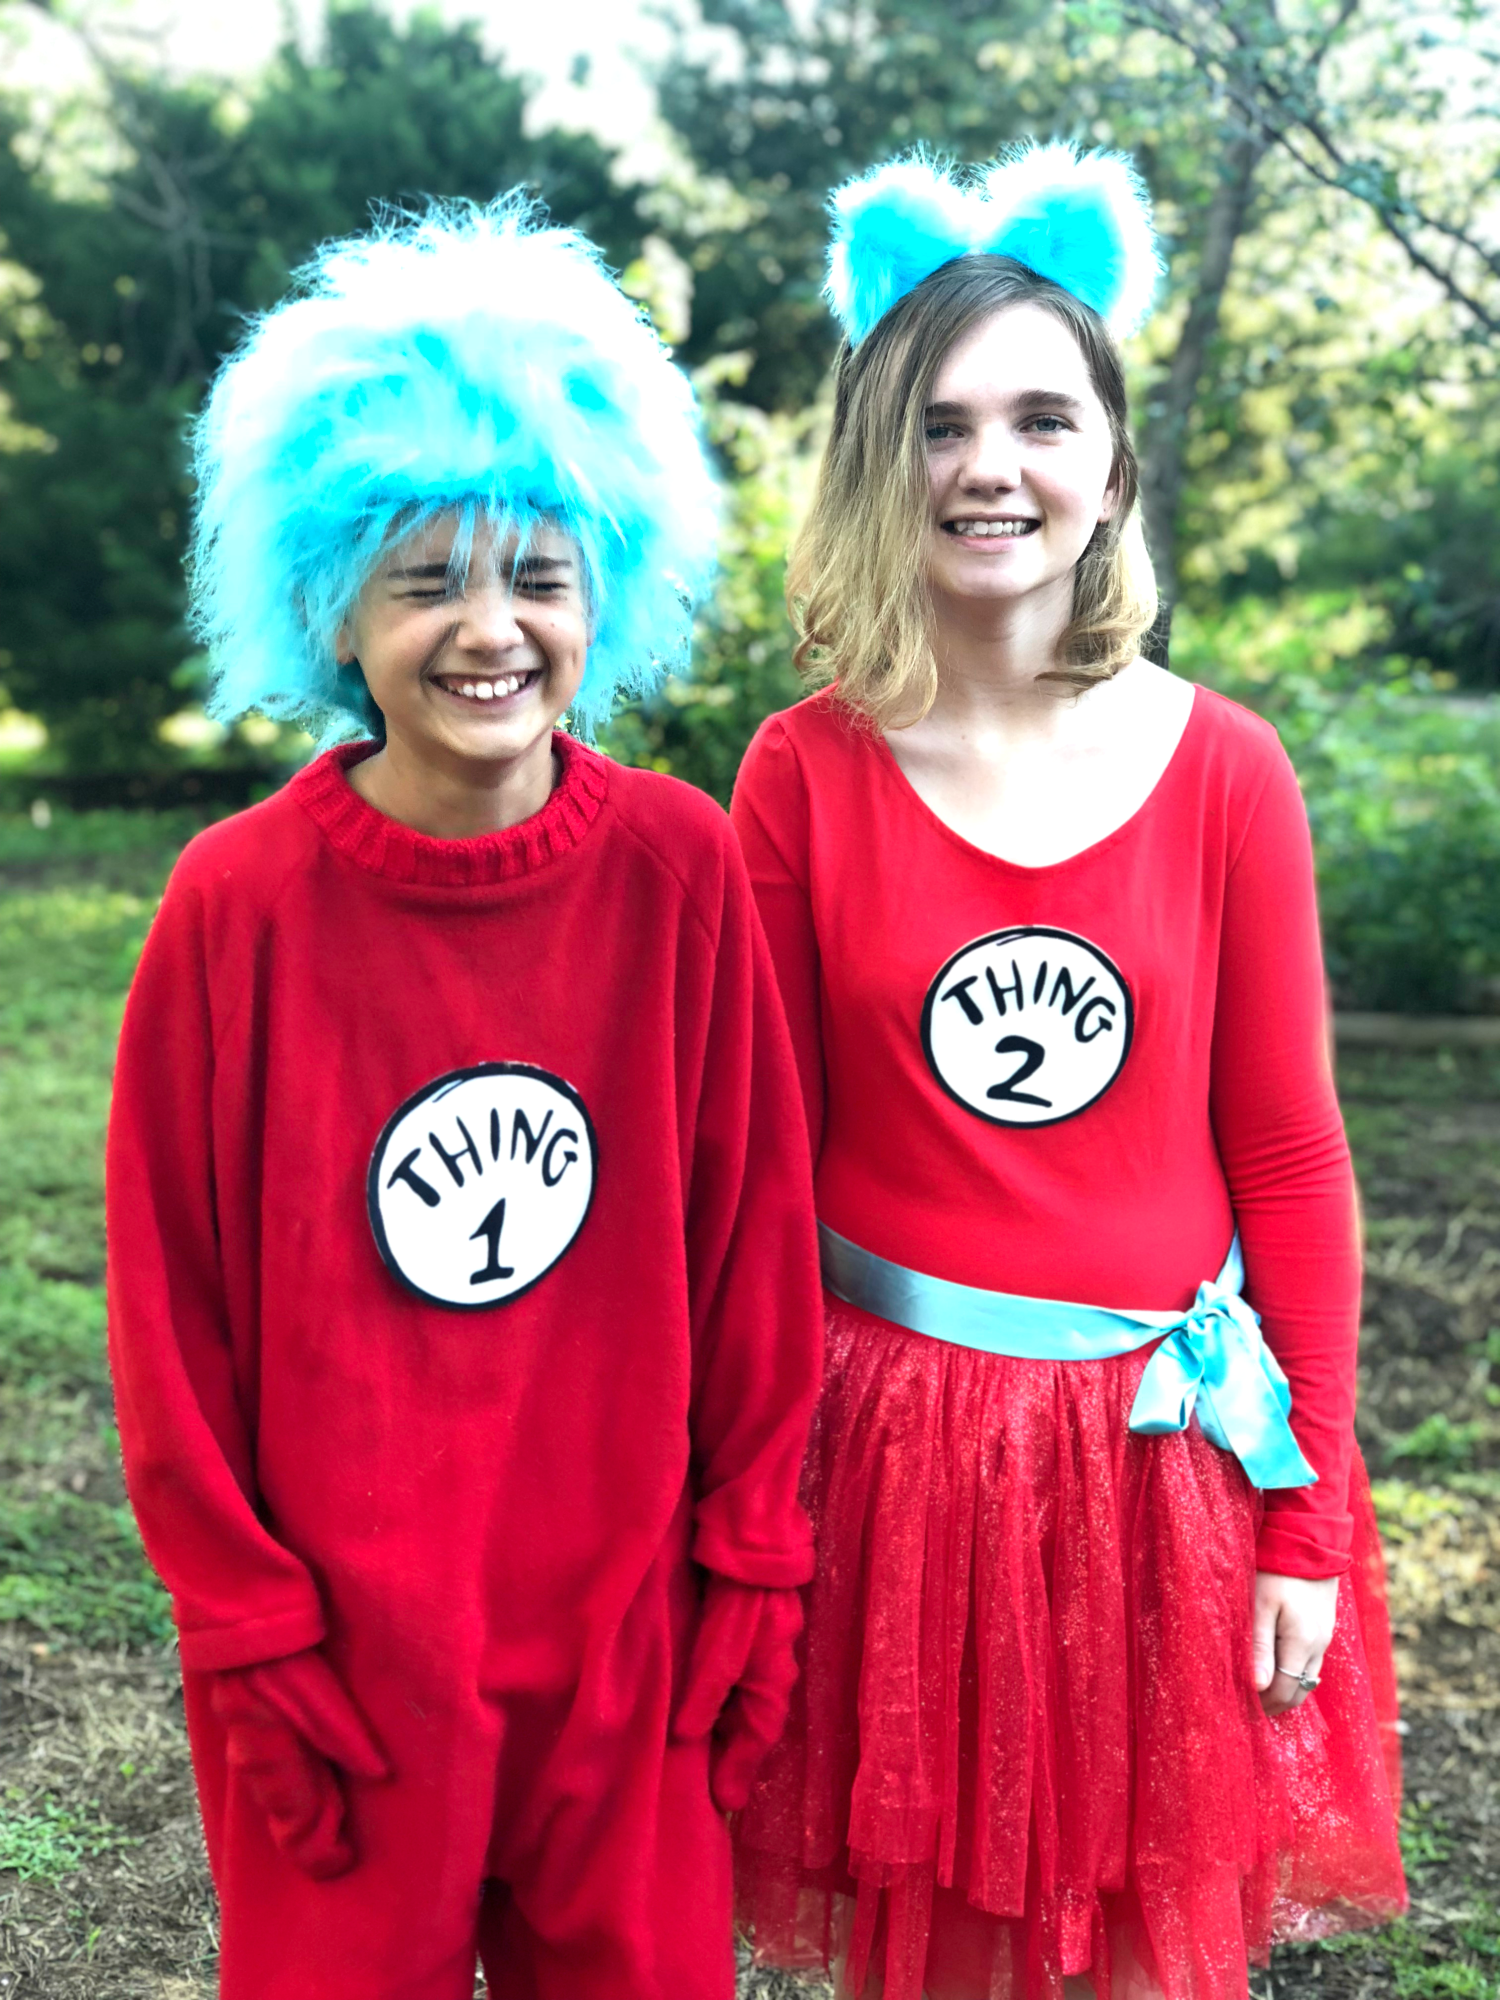 Thing 1 and Thing 2 laughing